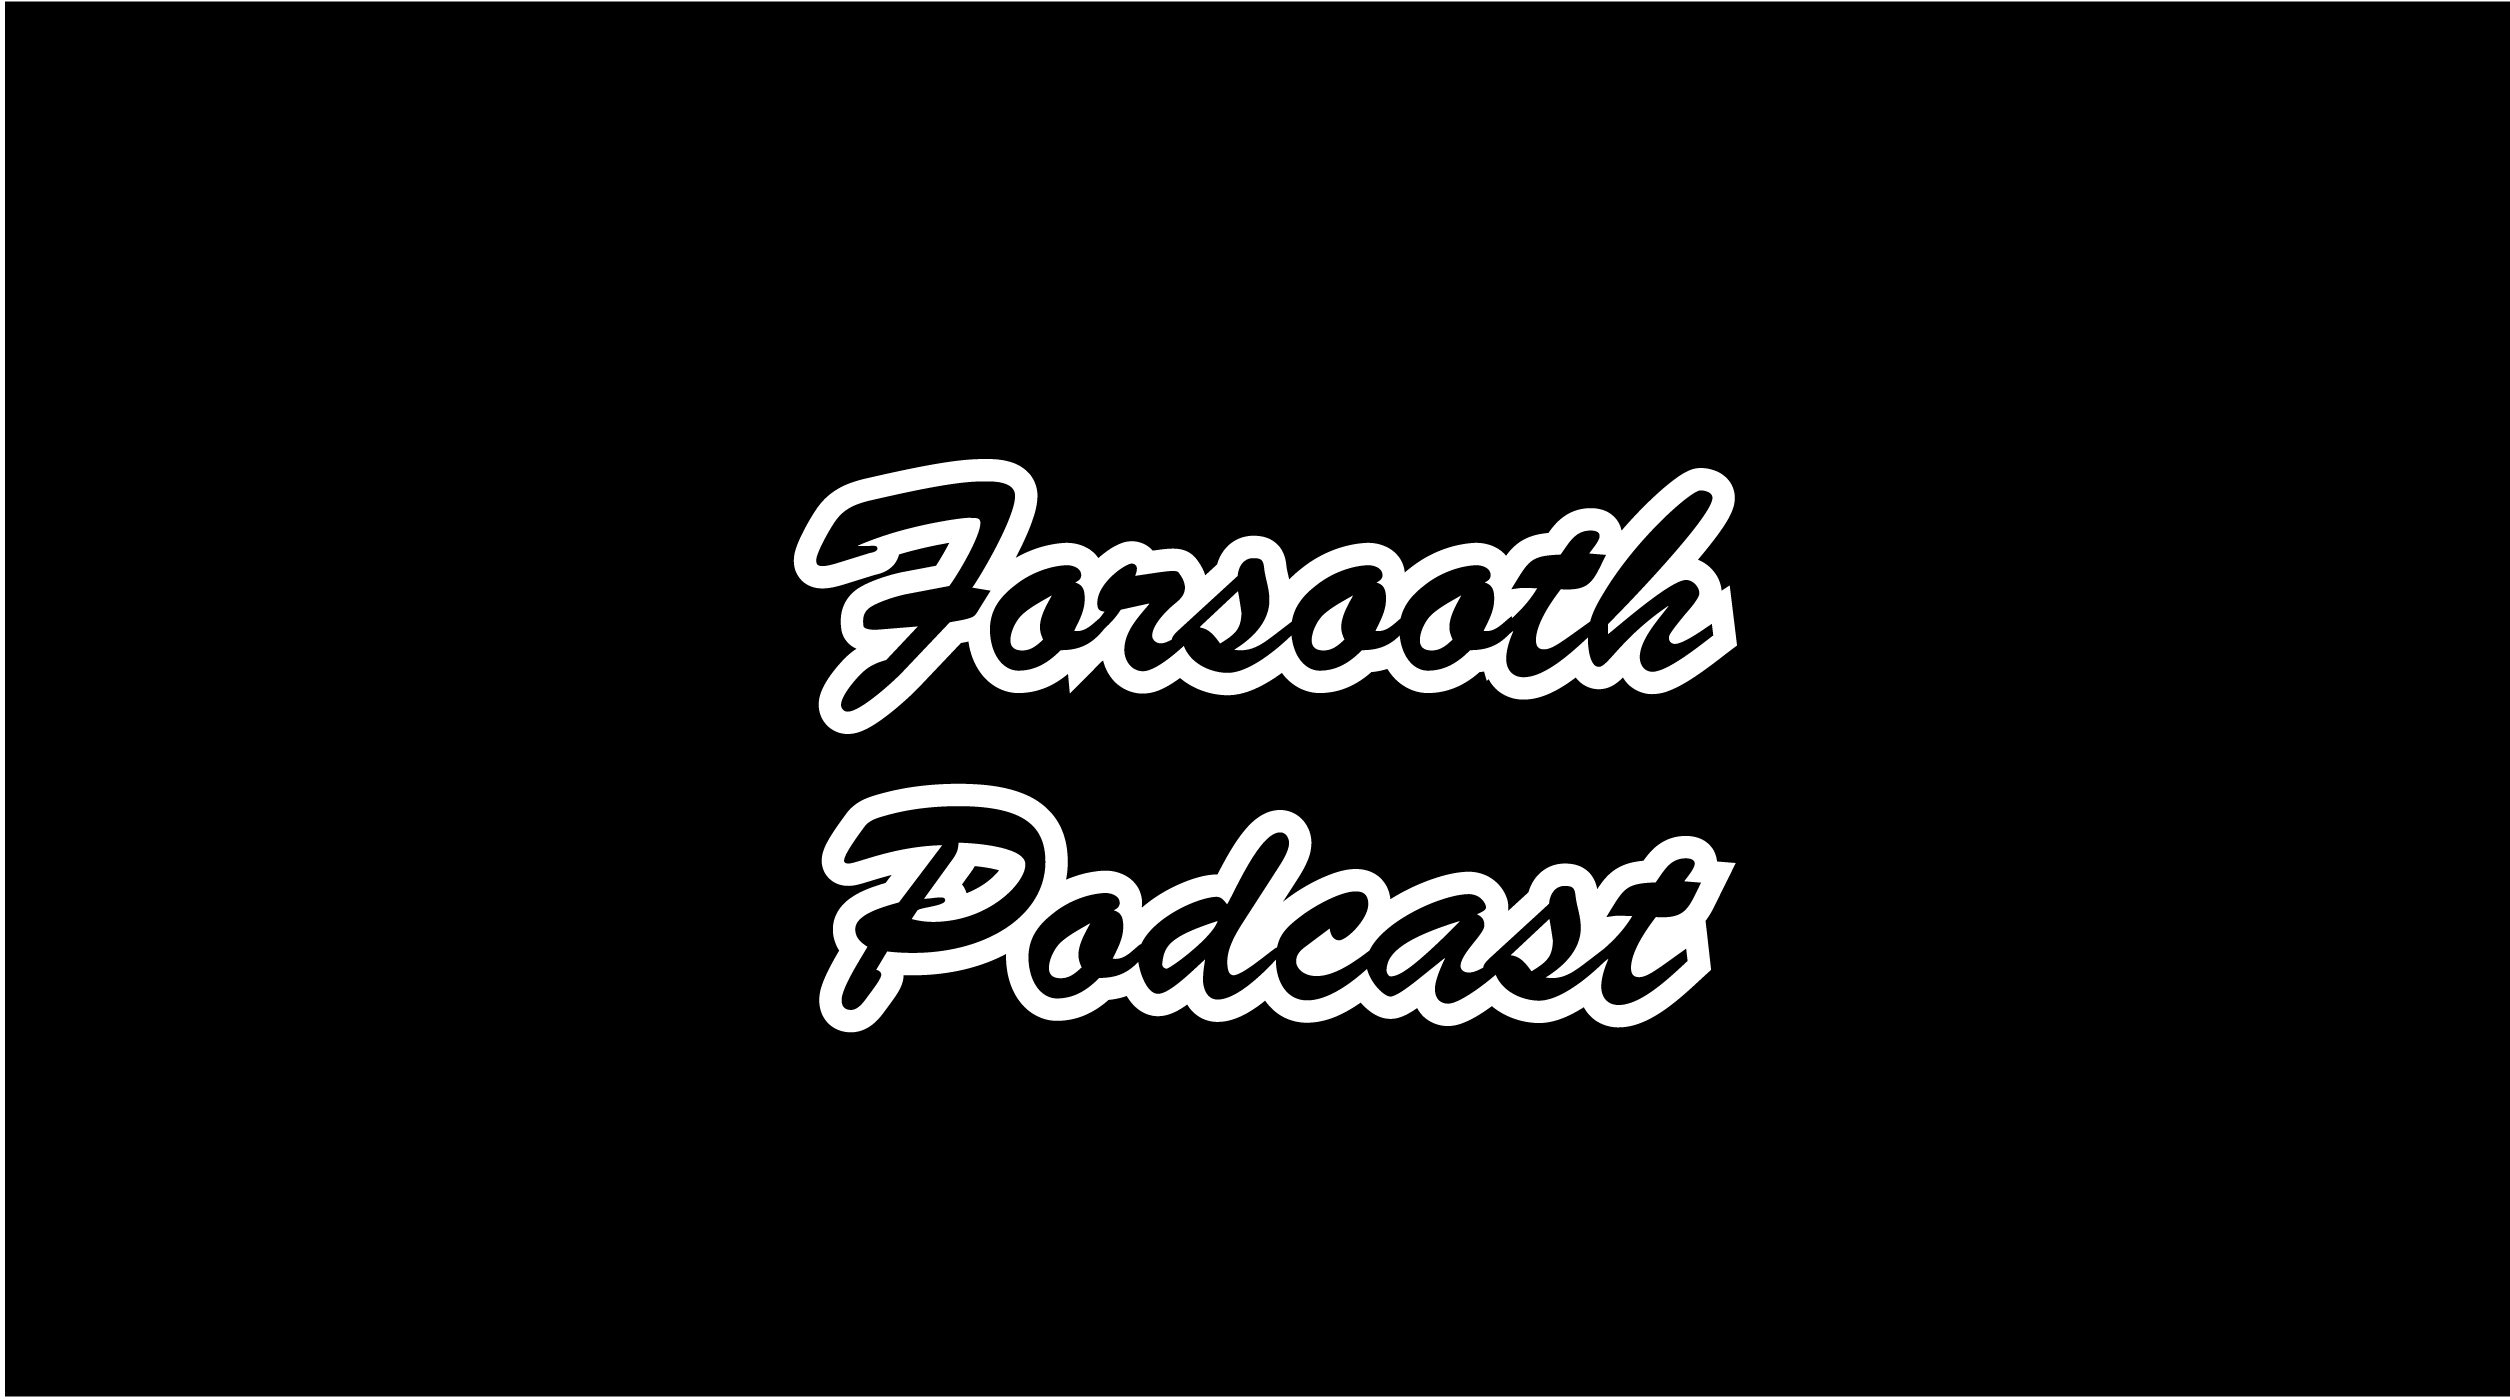 Forsooth Podcast